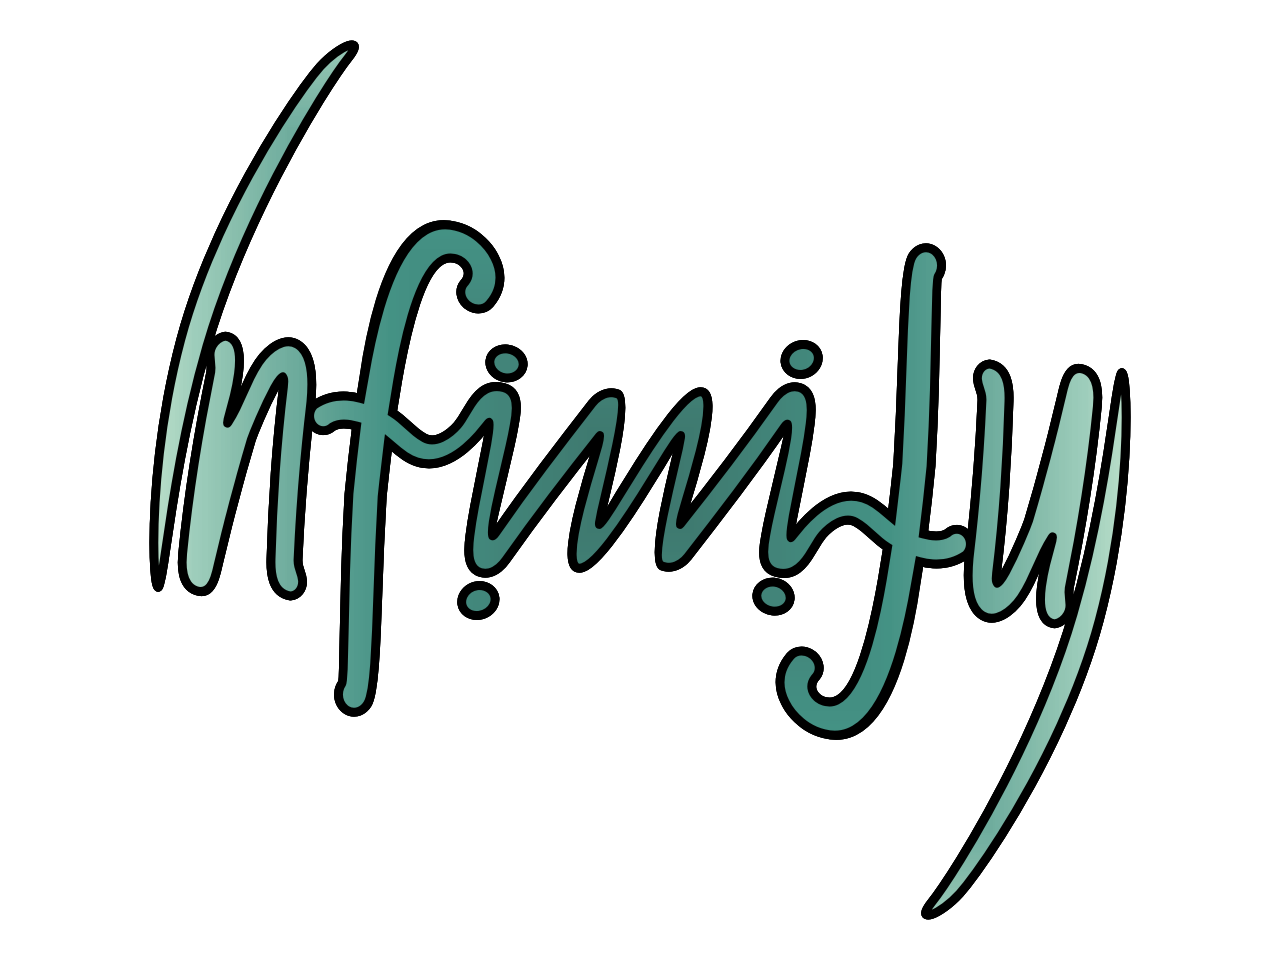 Infinity Ambigram by rickxard